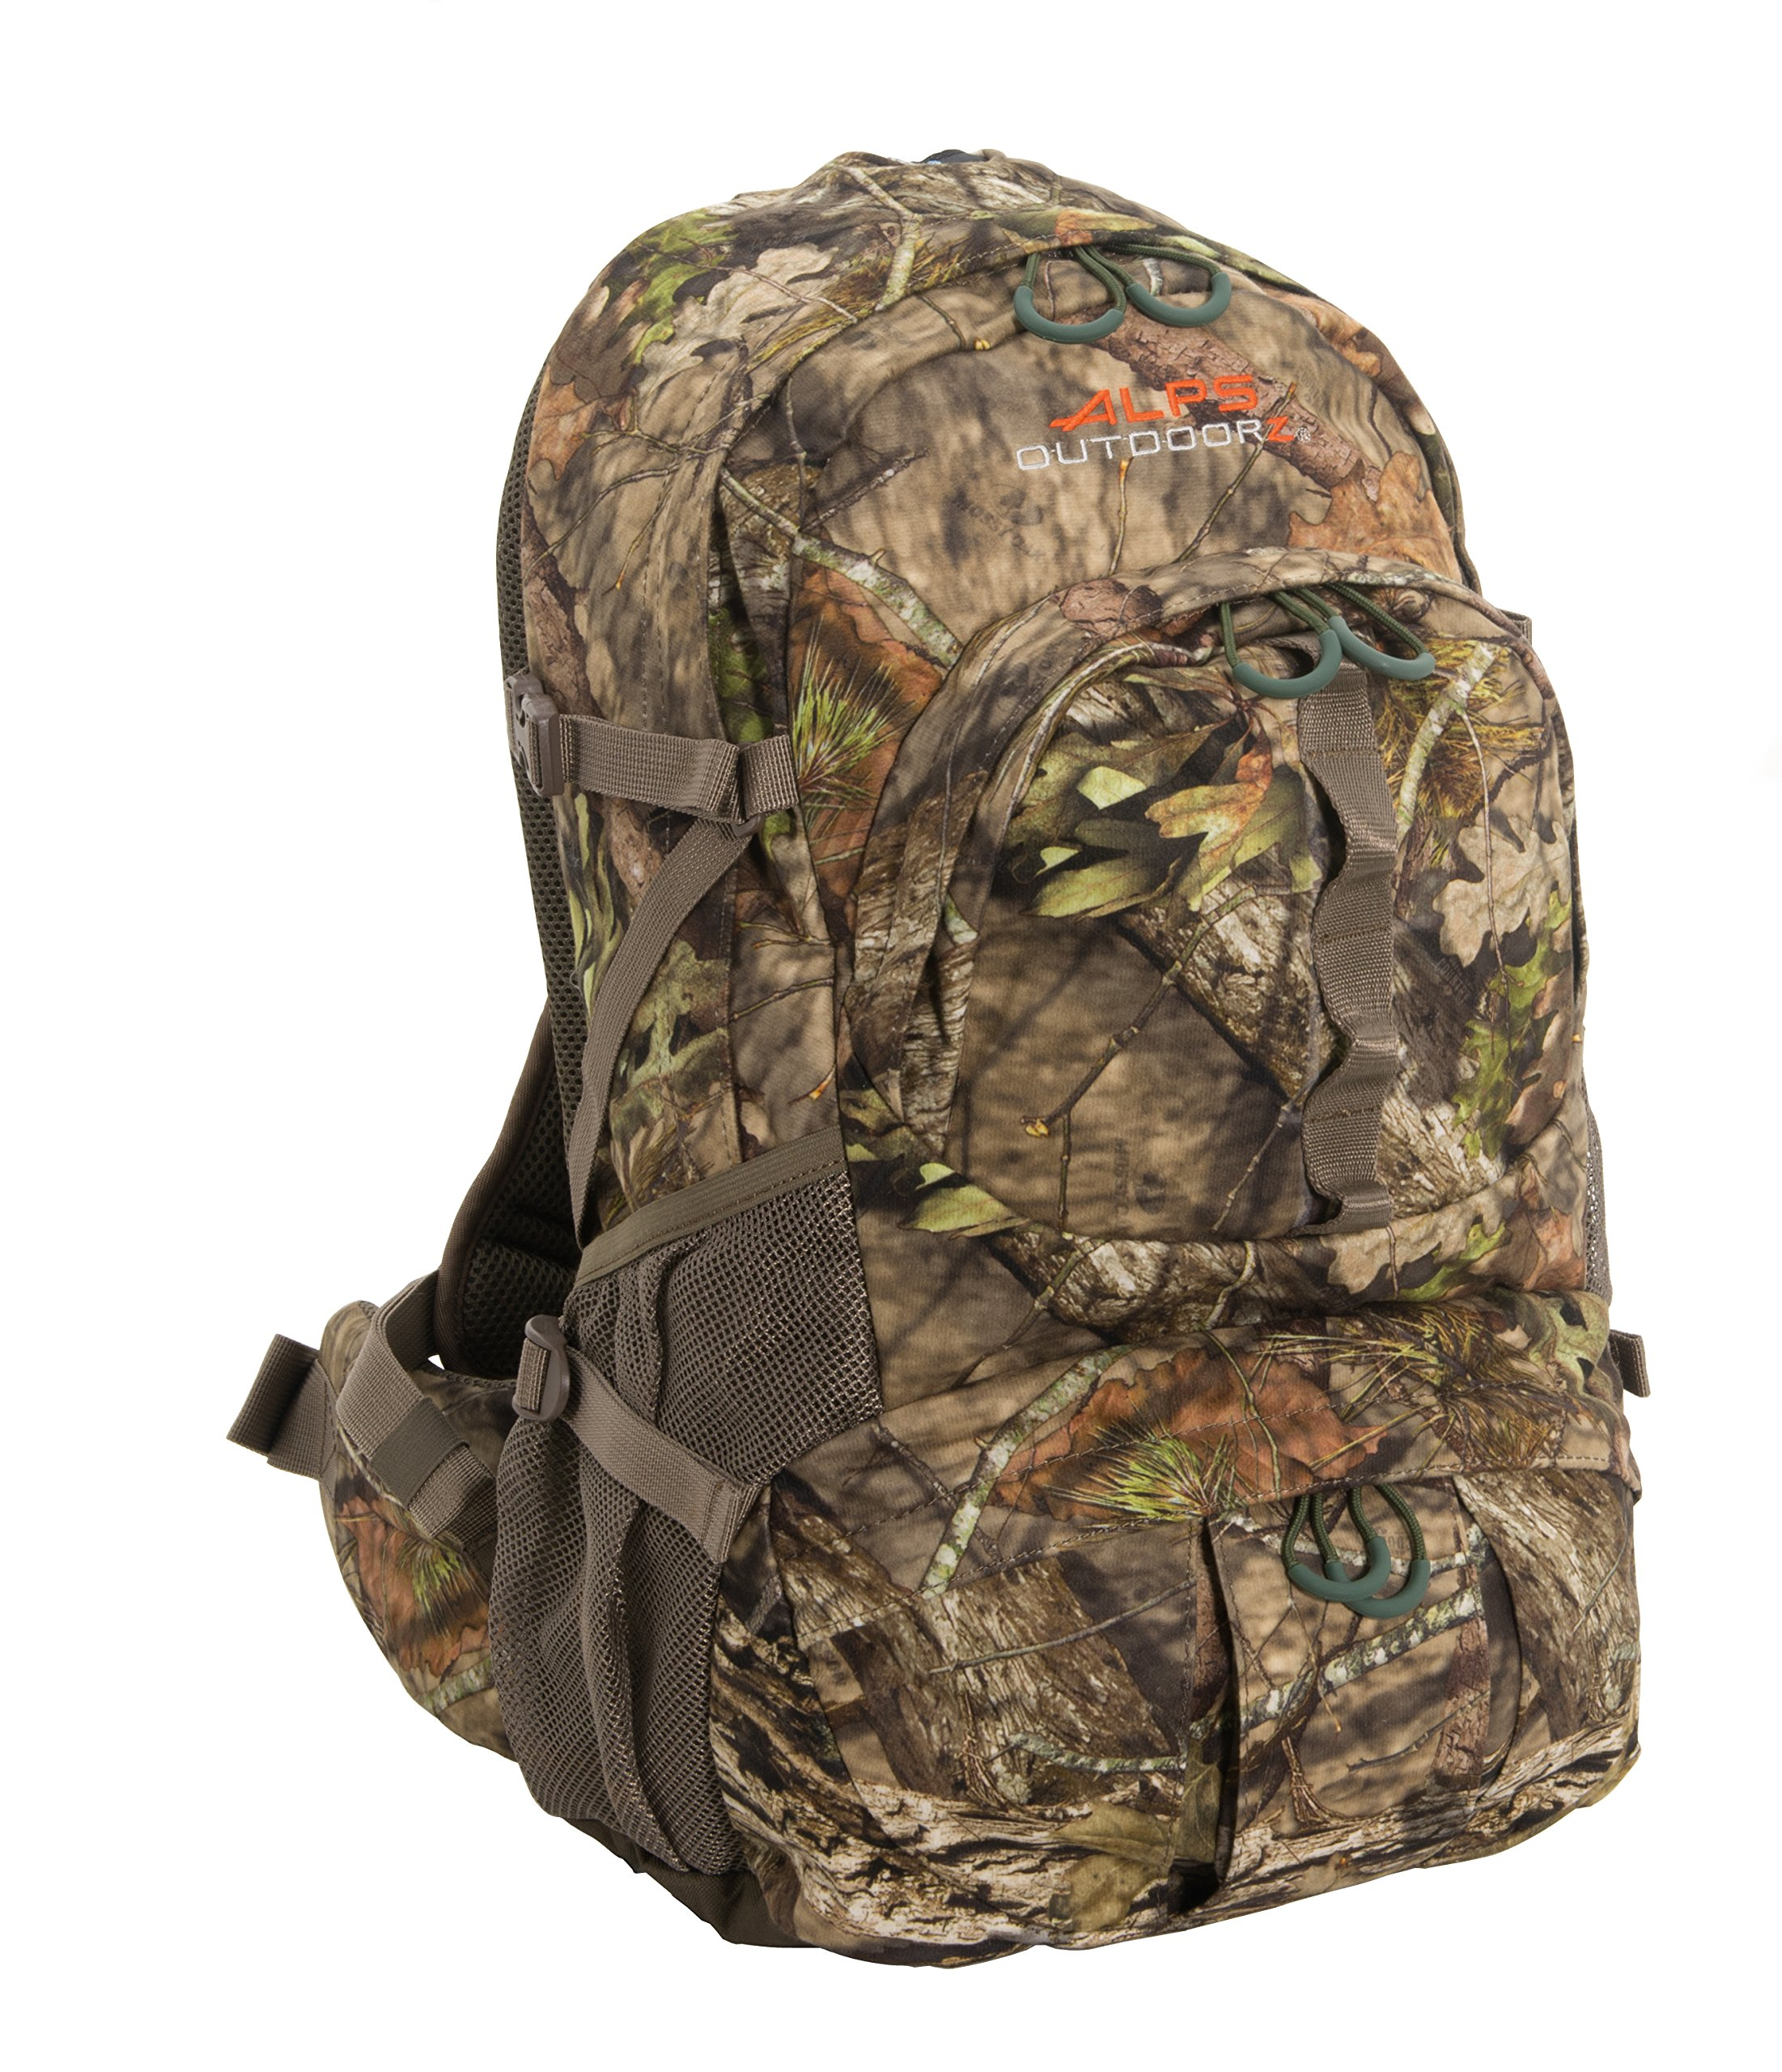 ALPS OutdoorZ Dark Timber Hunting Day Pack, Mossy Oak Country by ALPS OutdoorZ